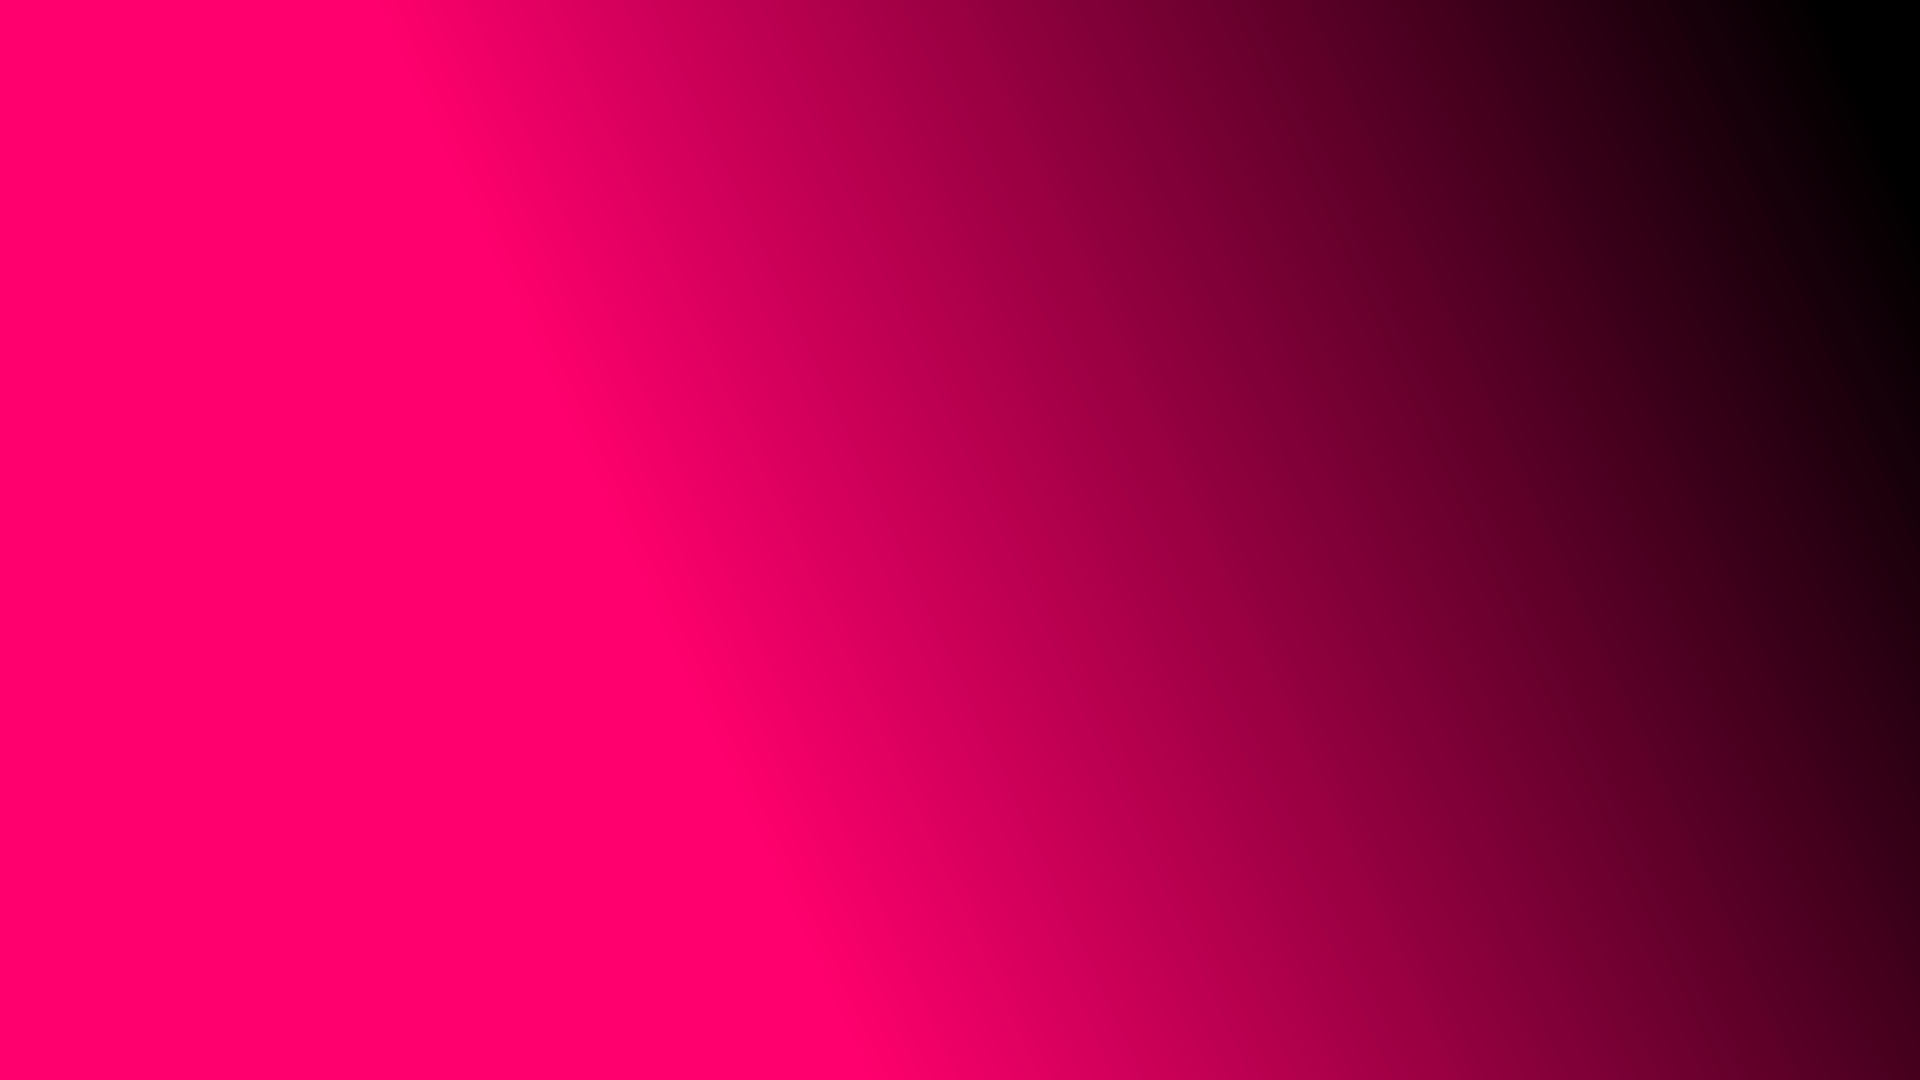 hot pink wallpapers for desktop - photo #5